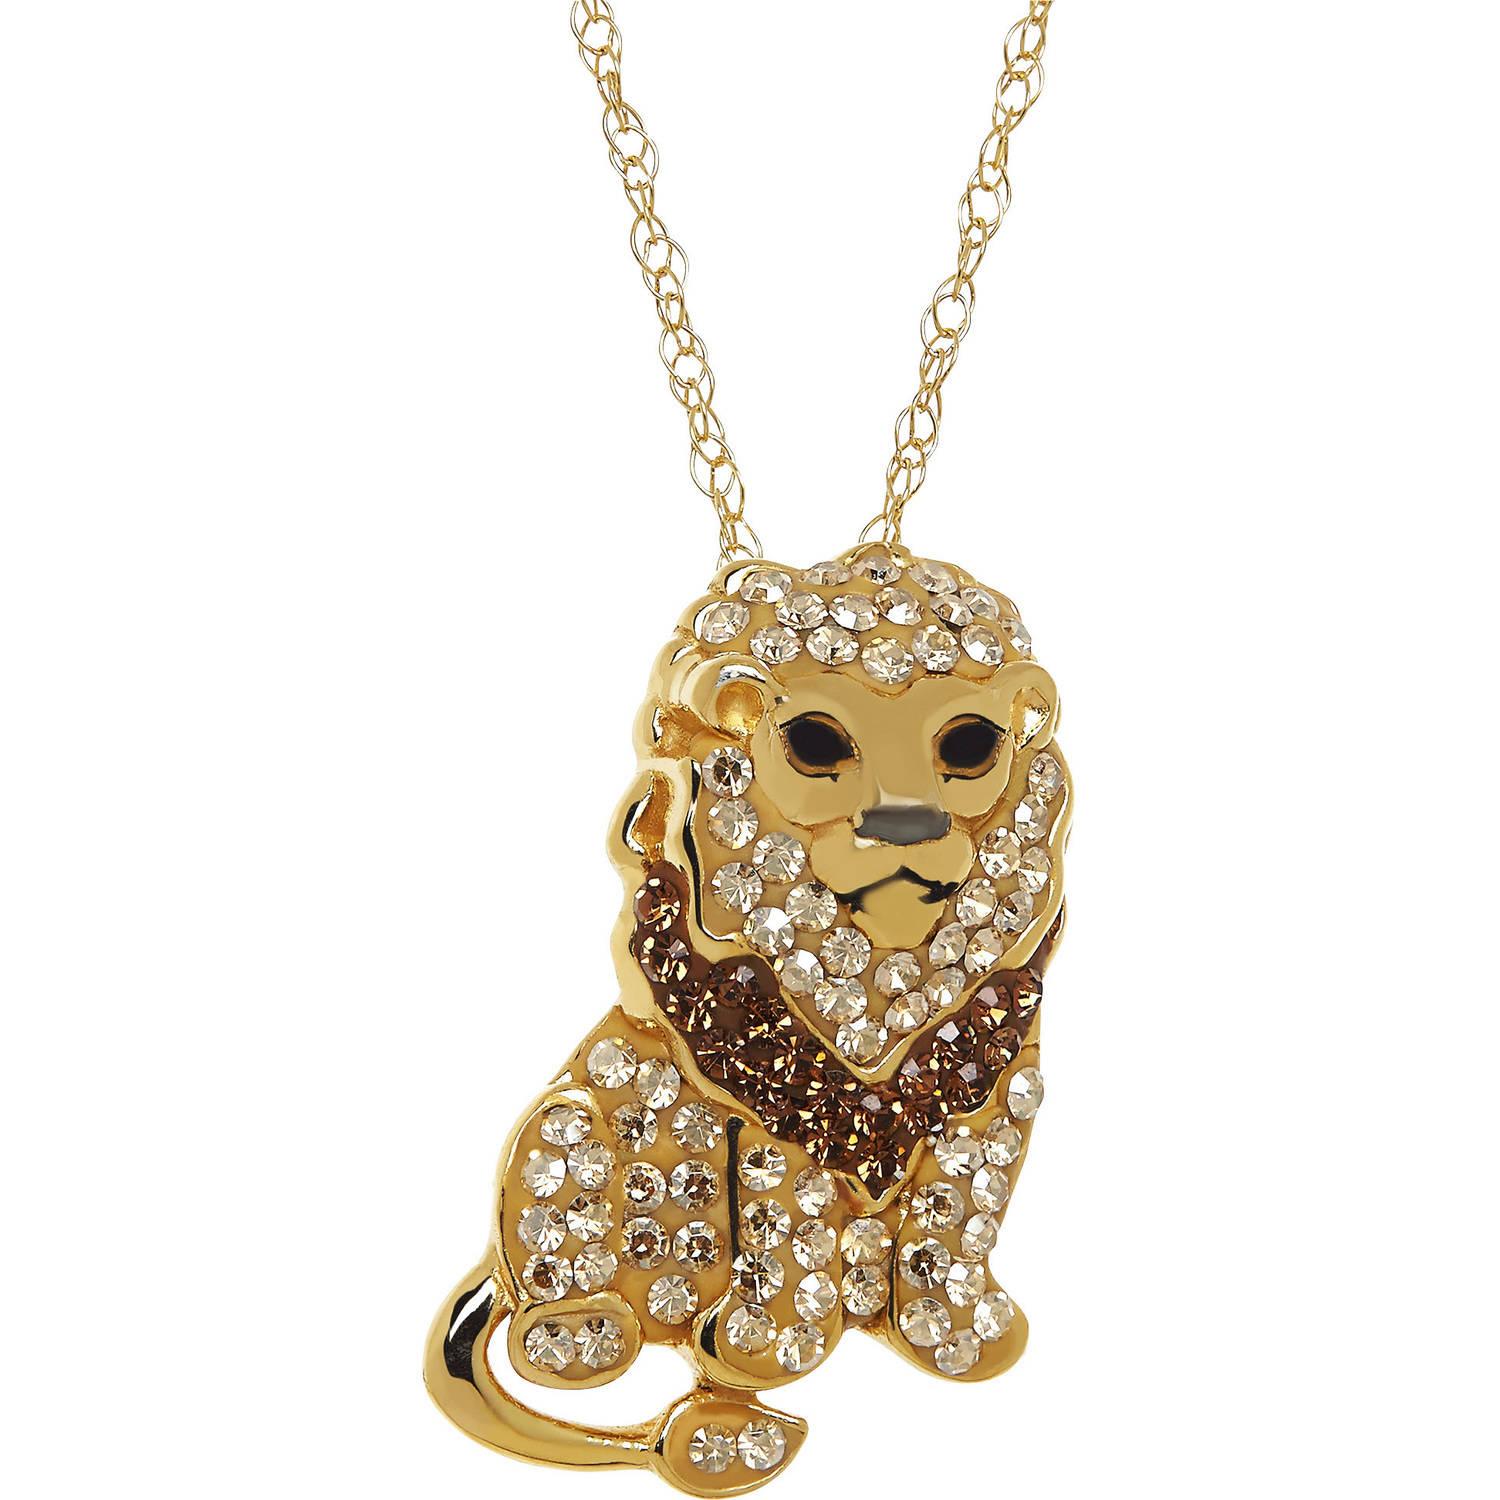 Animal Planet™ Lion Pendant made with Swarovski Elements in Gold-Plated Sterling Silver, 18""